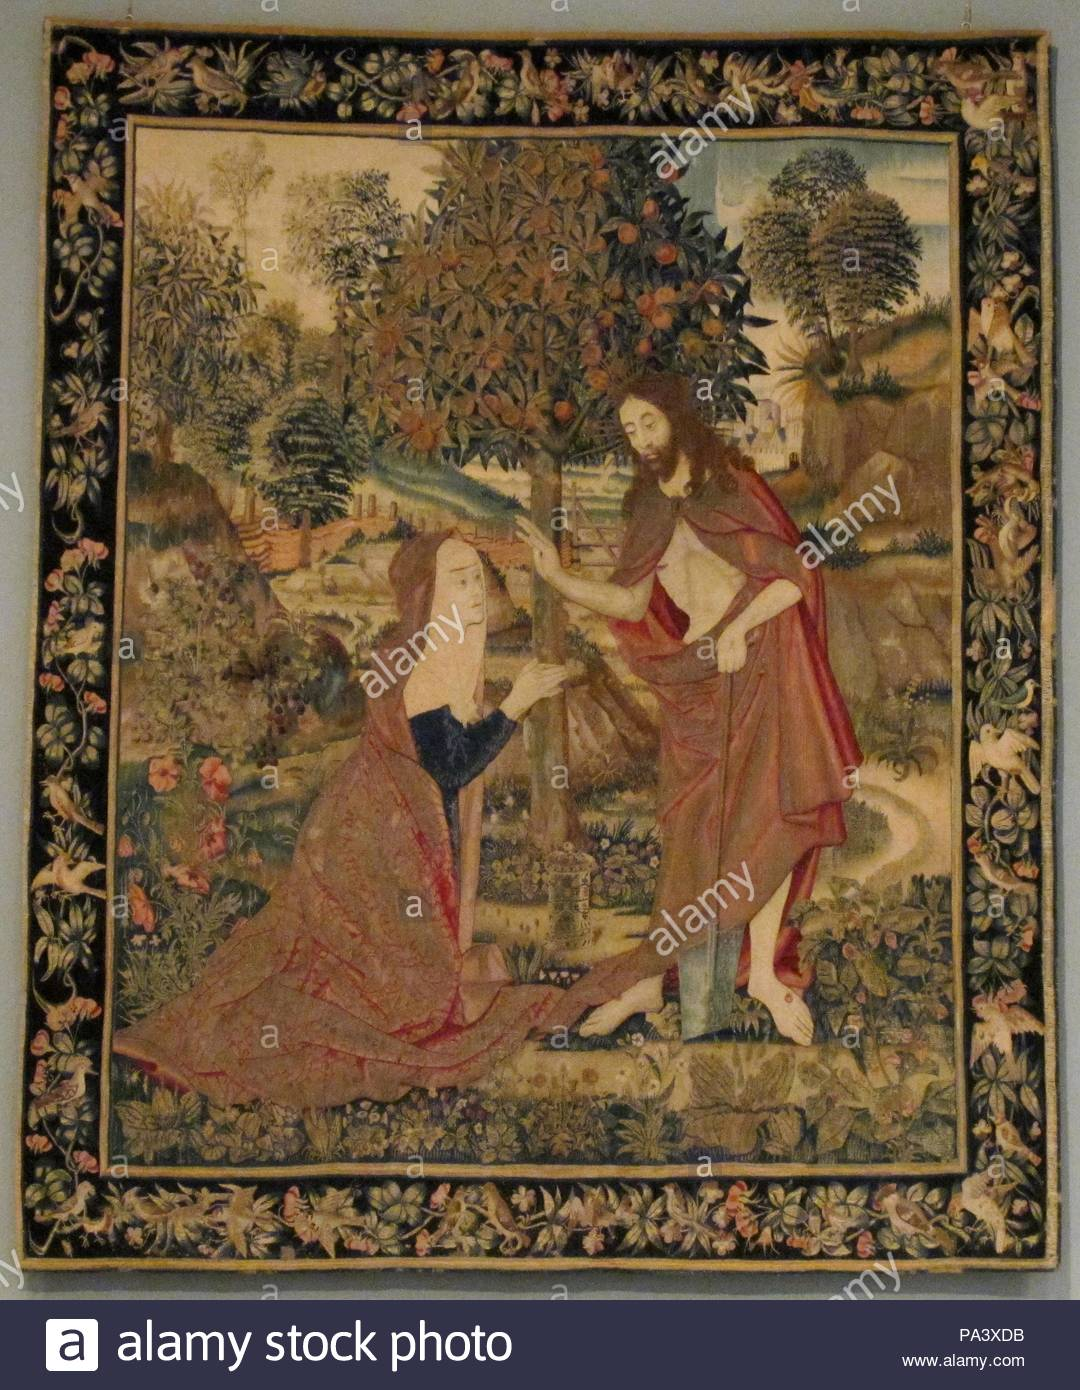 The Resurrected Christ Appearing to Mary Magdelene in the Garden, ca. 1500–1520, South Netherlandish, Wool warp; wool, silk, and gilt wefts, Overall: 94 x 80in. (238.8 x 203.2cm), Textiles-Tapestries. - Stock Image